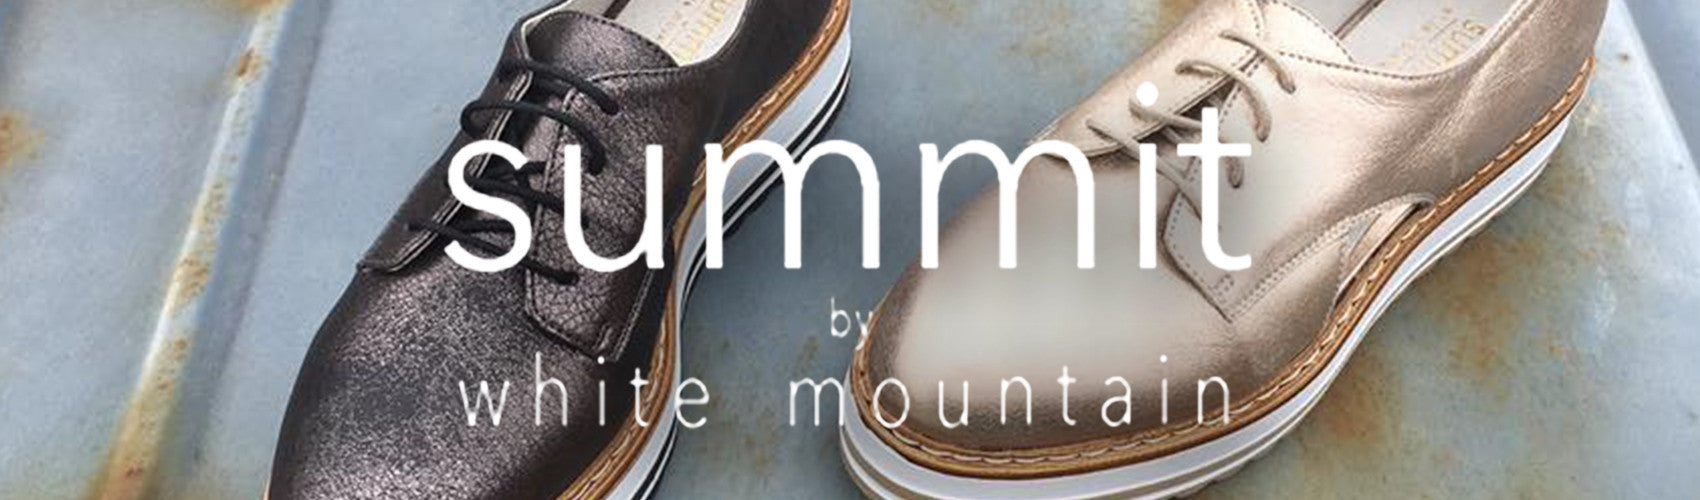 Summit by White Mountain. Italian made shoes designed in fine leather